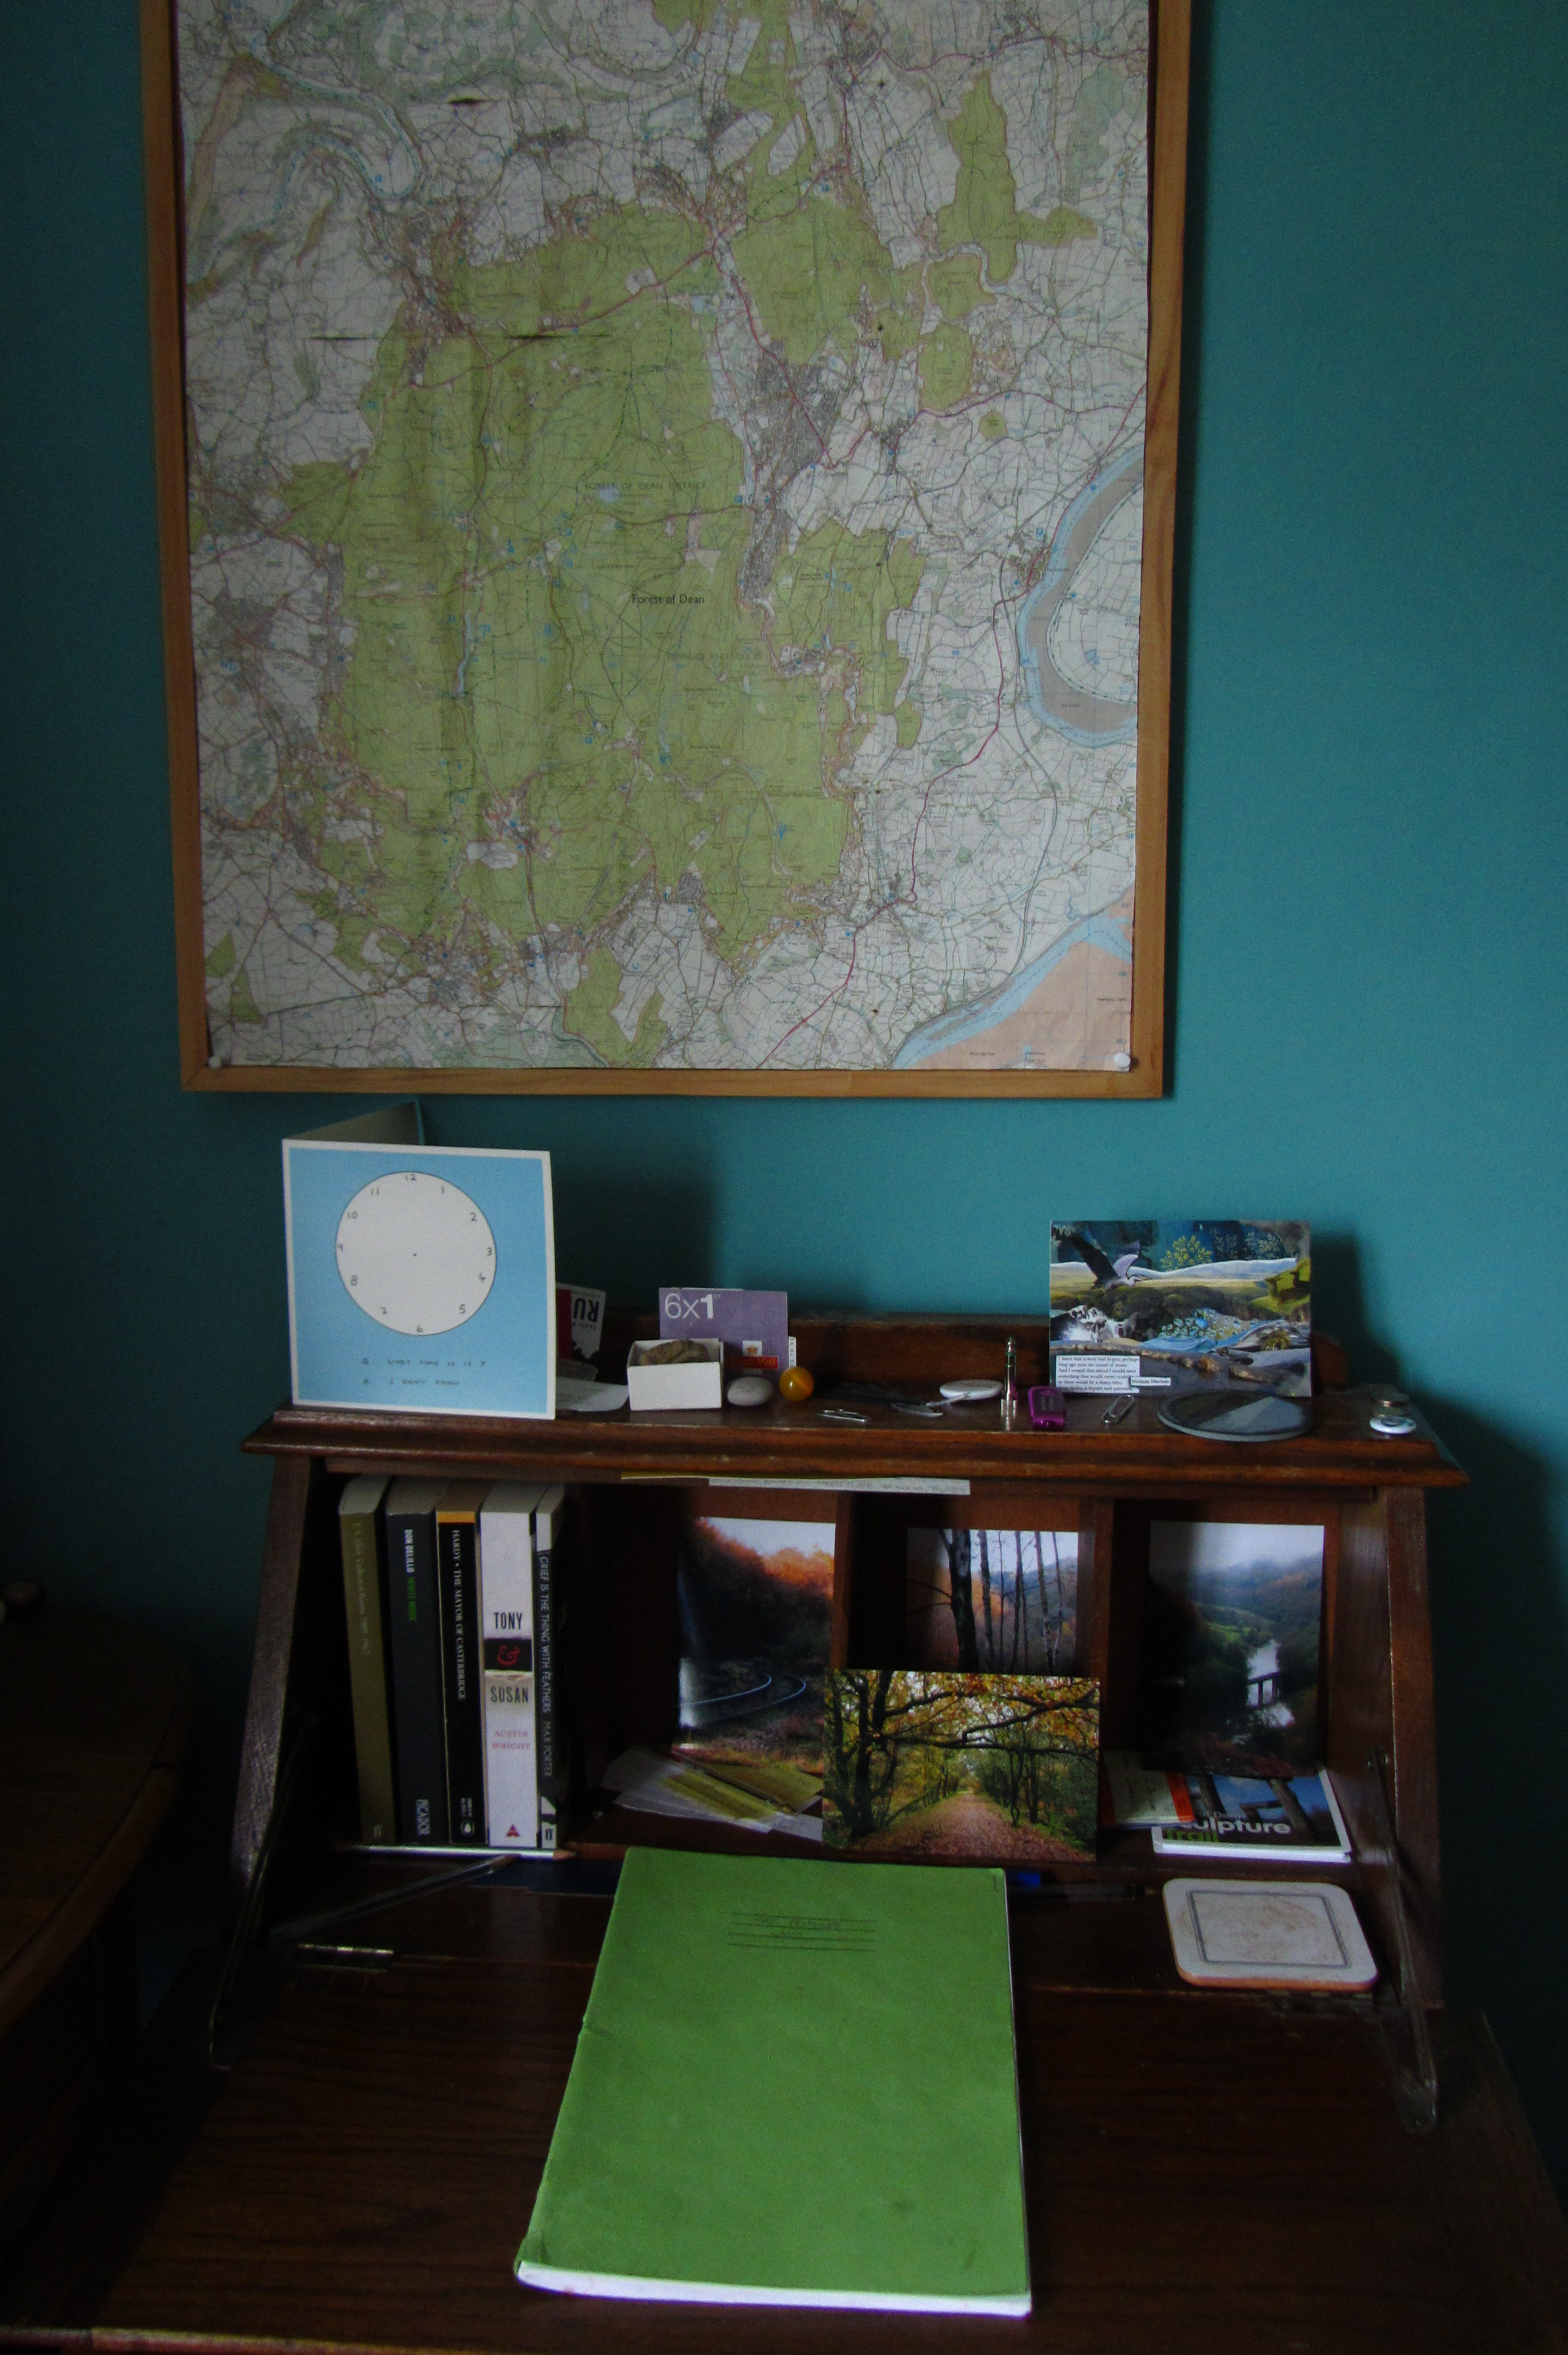 Writing desk. Blue wall with a map of the Forest of Dean. On the desk are the books TS Eliot Collect Poems, White Noise by Don DeLillo, The Mayor of Casterbridge by Thomas Hardy, Tony and Susan by Austin Wright, and Grief is the Thing with Feathers by Max Porter. Also photographs of the Forest of Dean in Autumn, a book of 6 first class stamps, and in the centre of the desk is a green notebook.